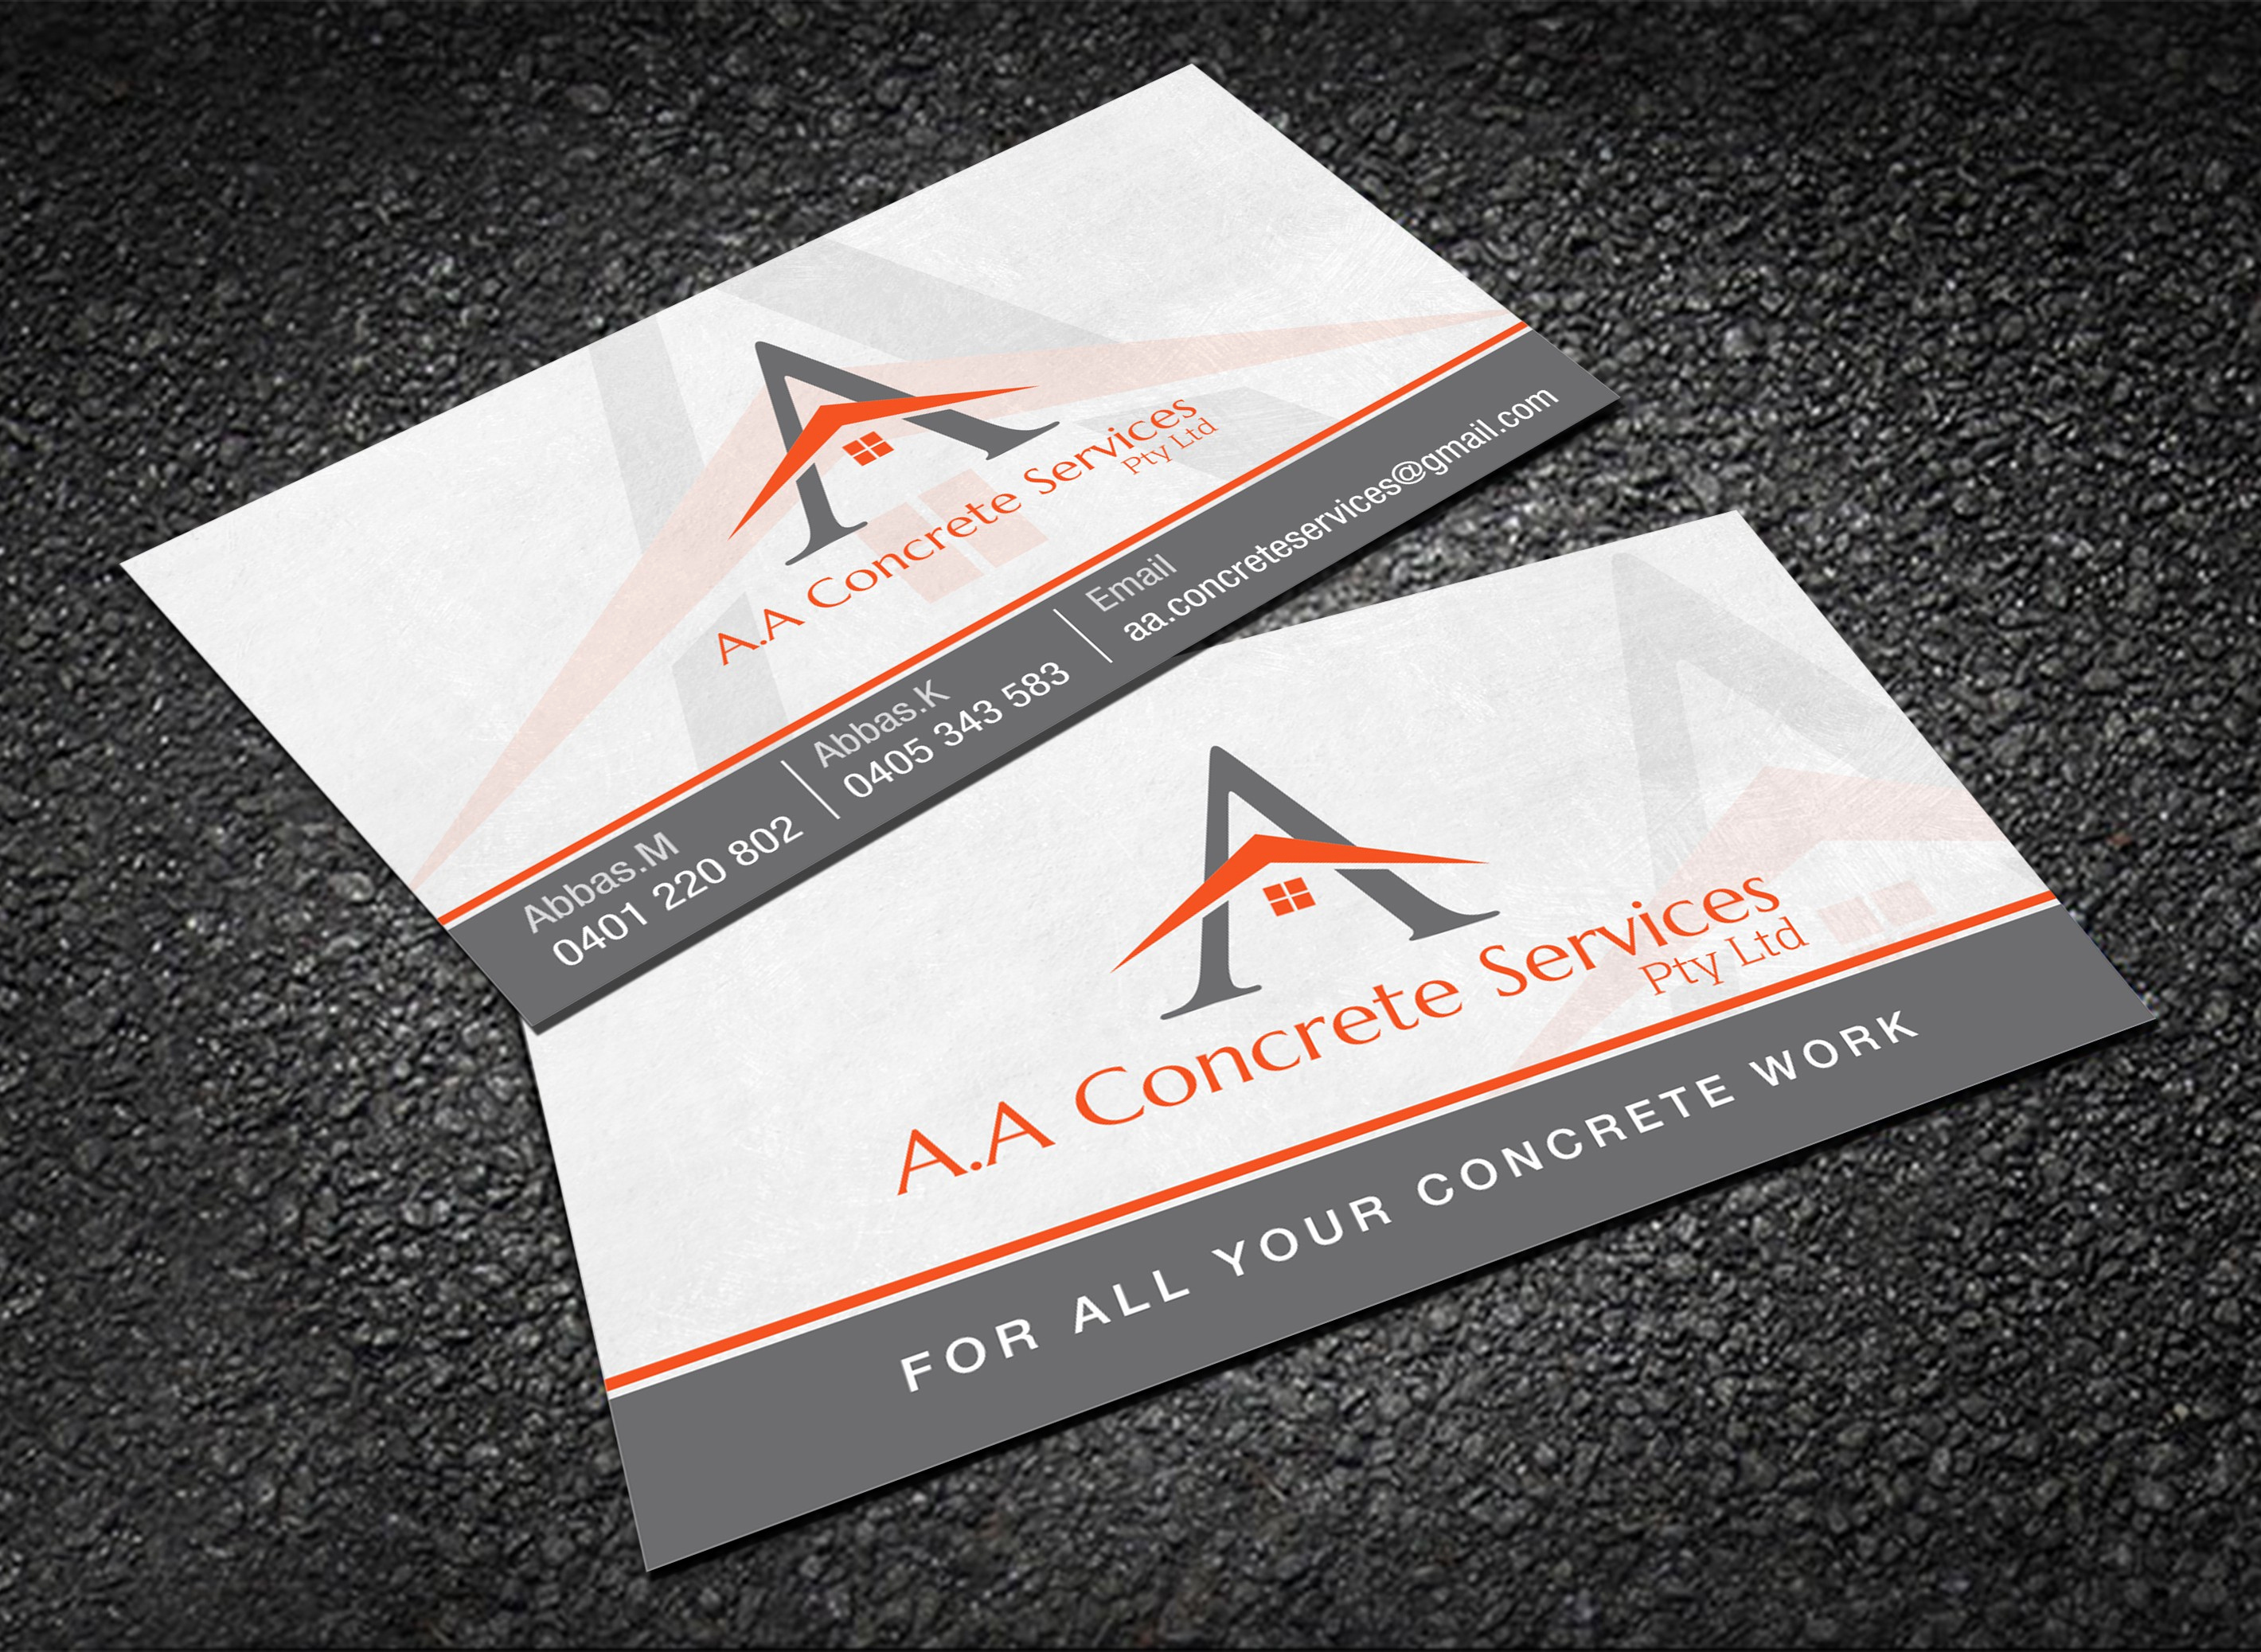 Business Card Template Illustrator Free Inspirational Business Cards Free Downloads New Card Template Illustr On